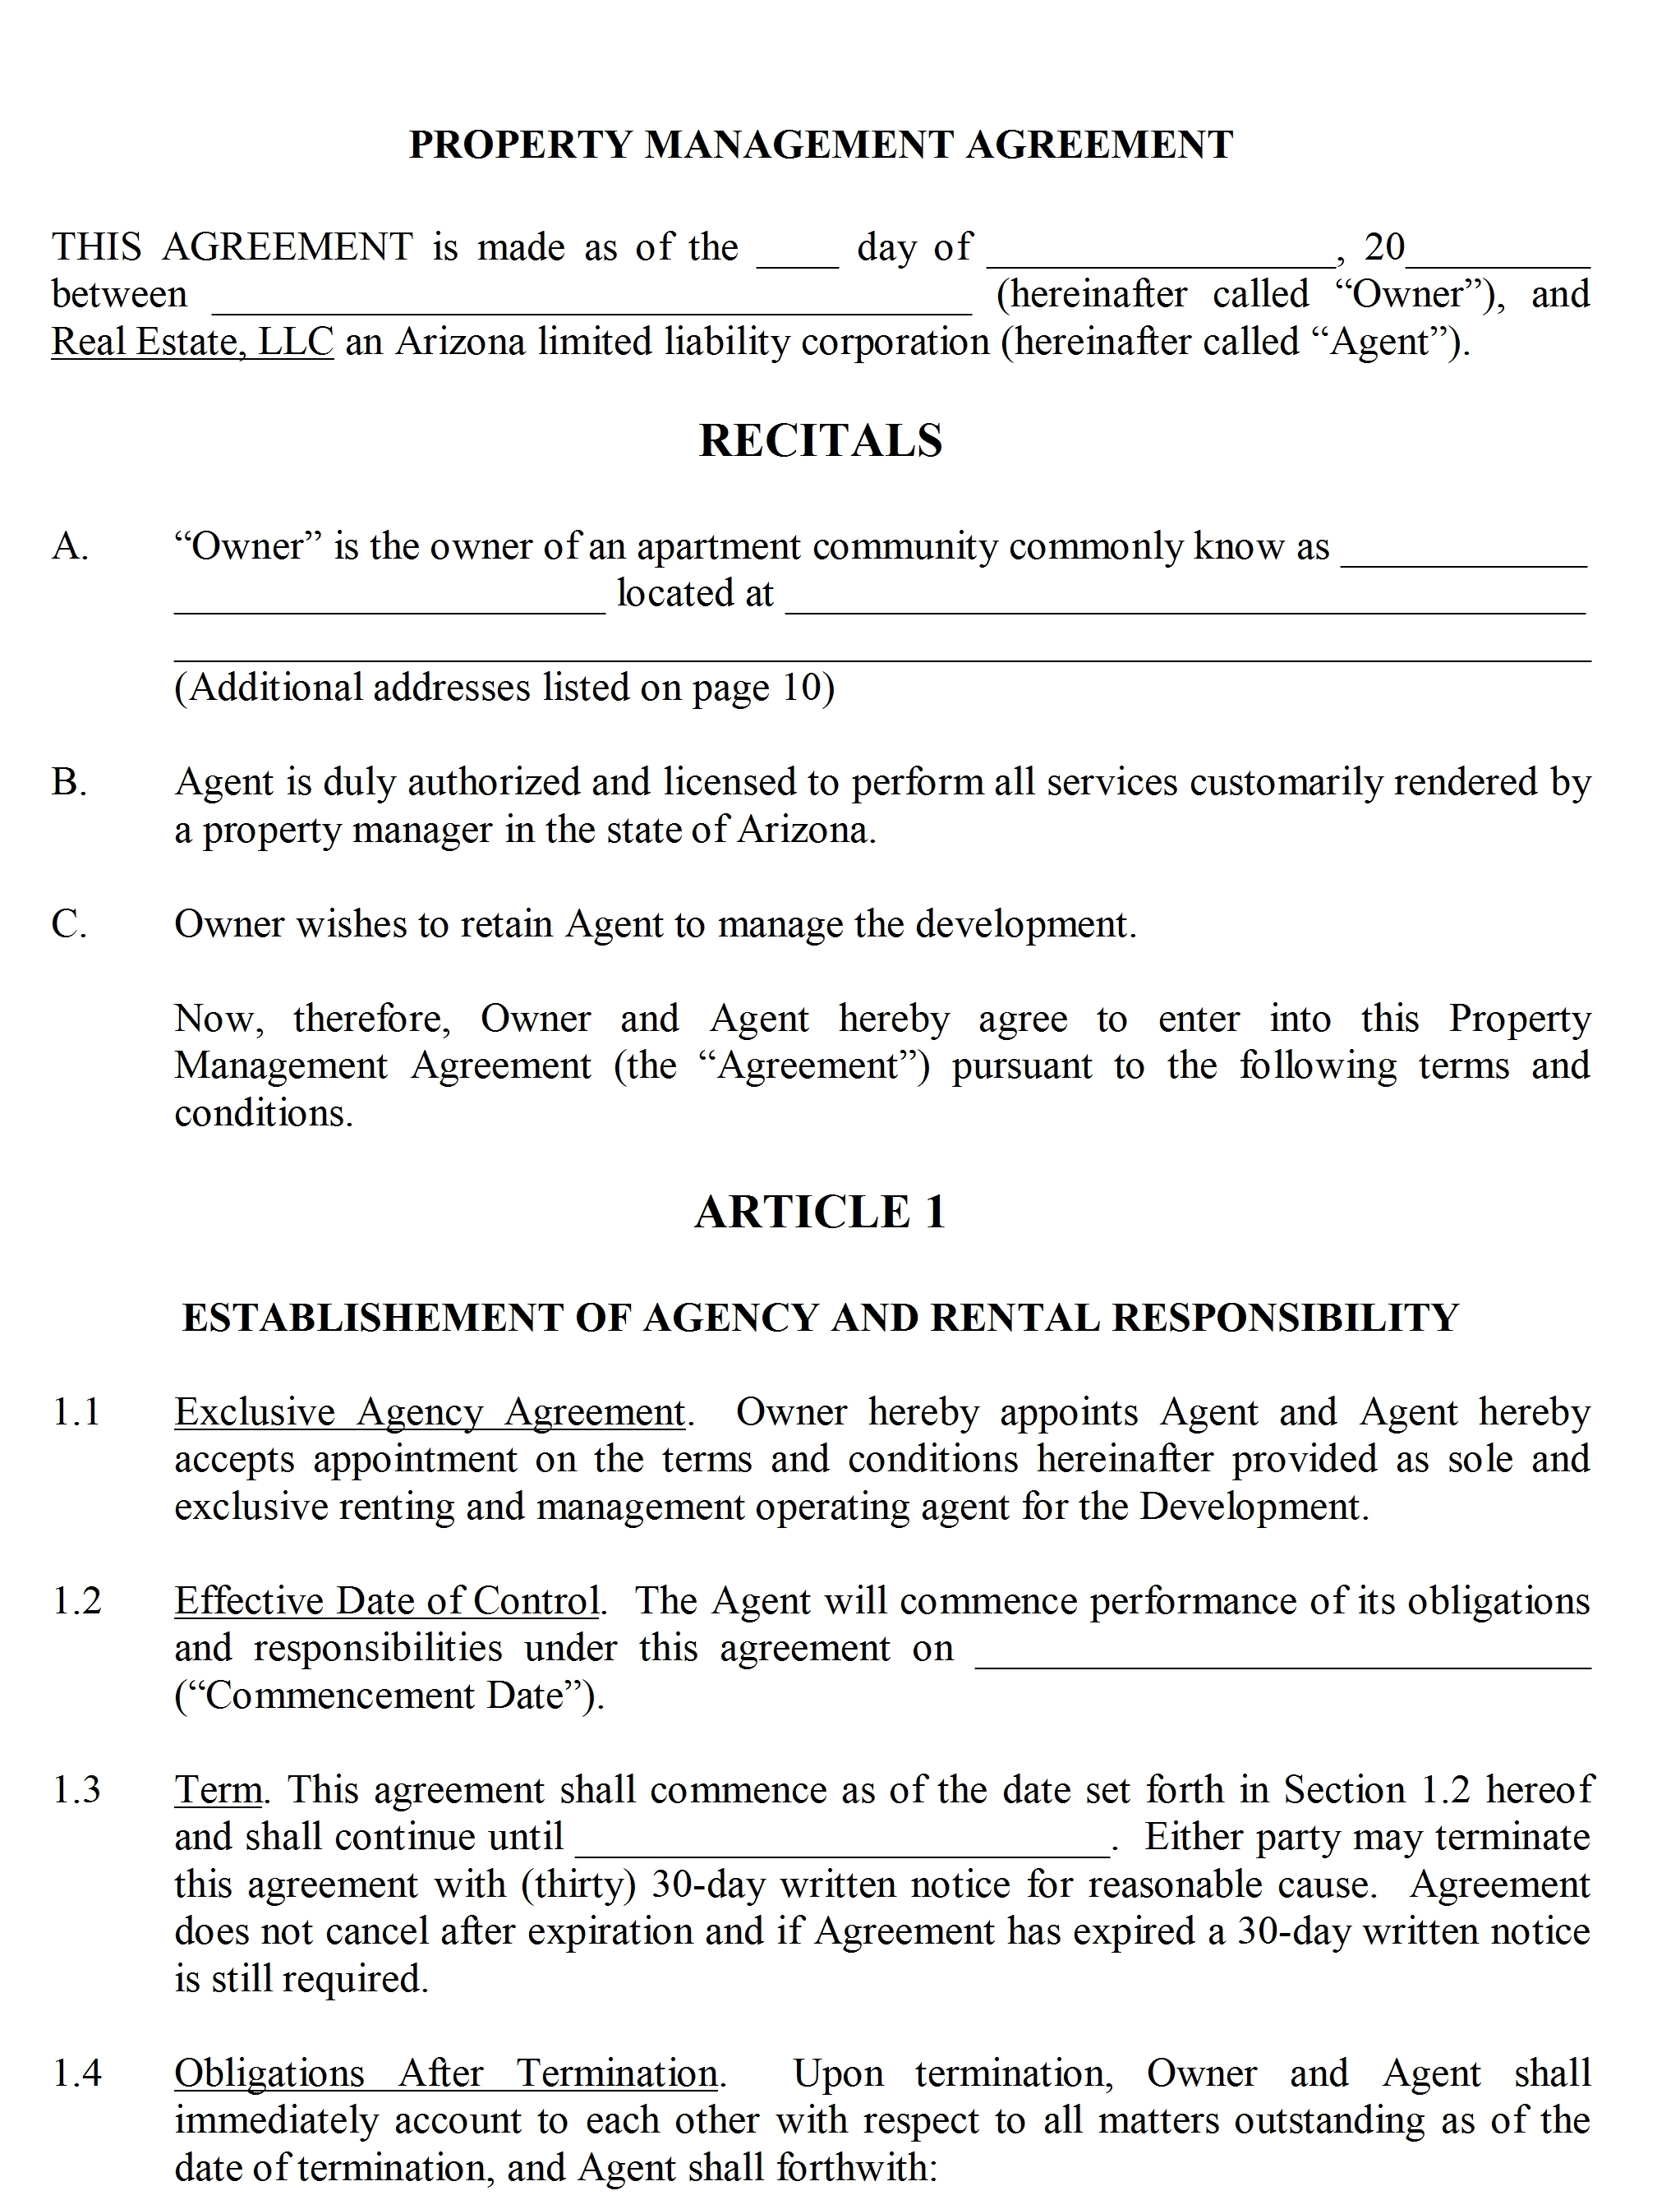 house sharing agreement template - offer to purchase property letter template 3 ways to